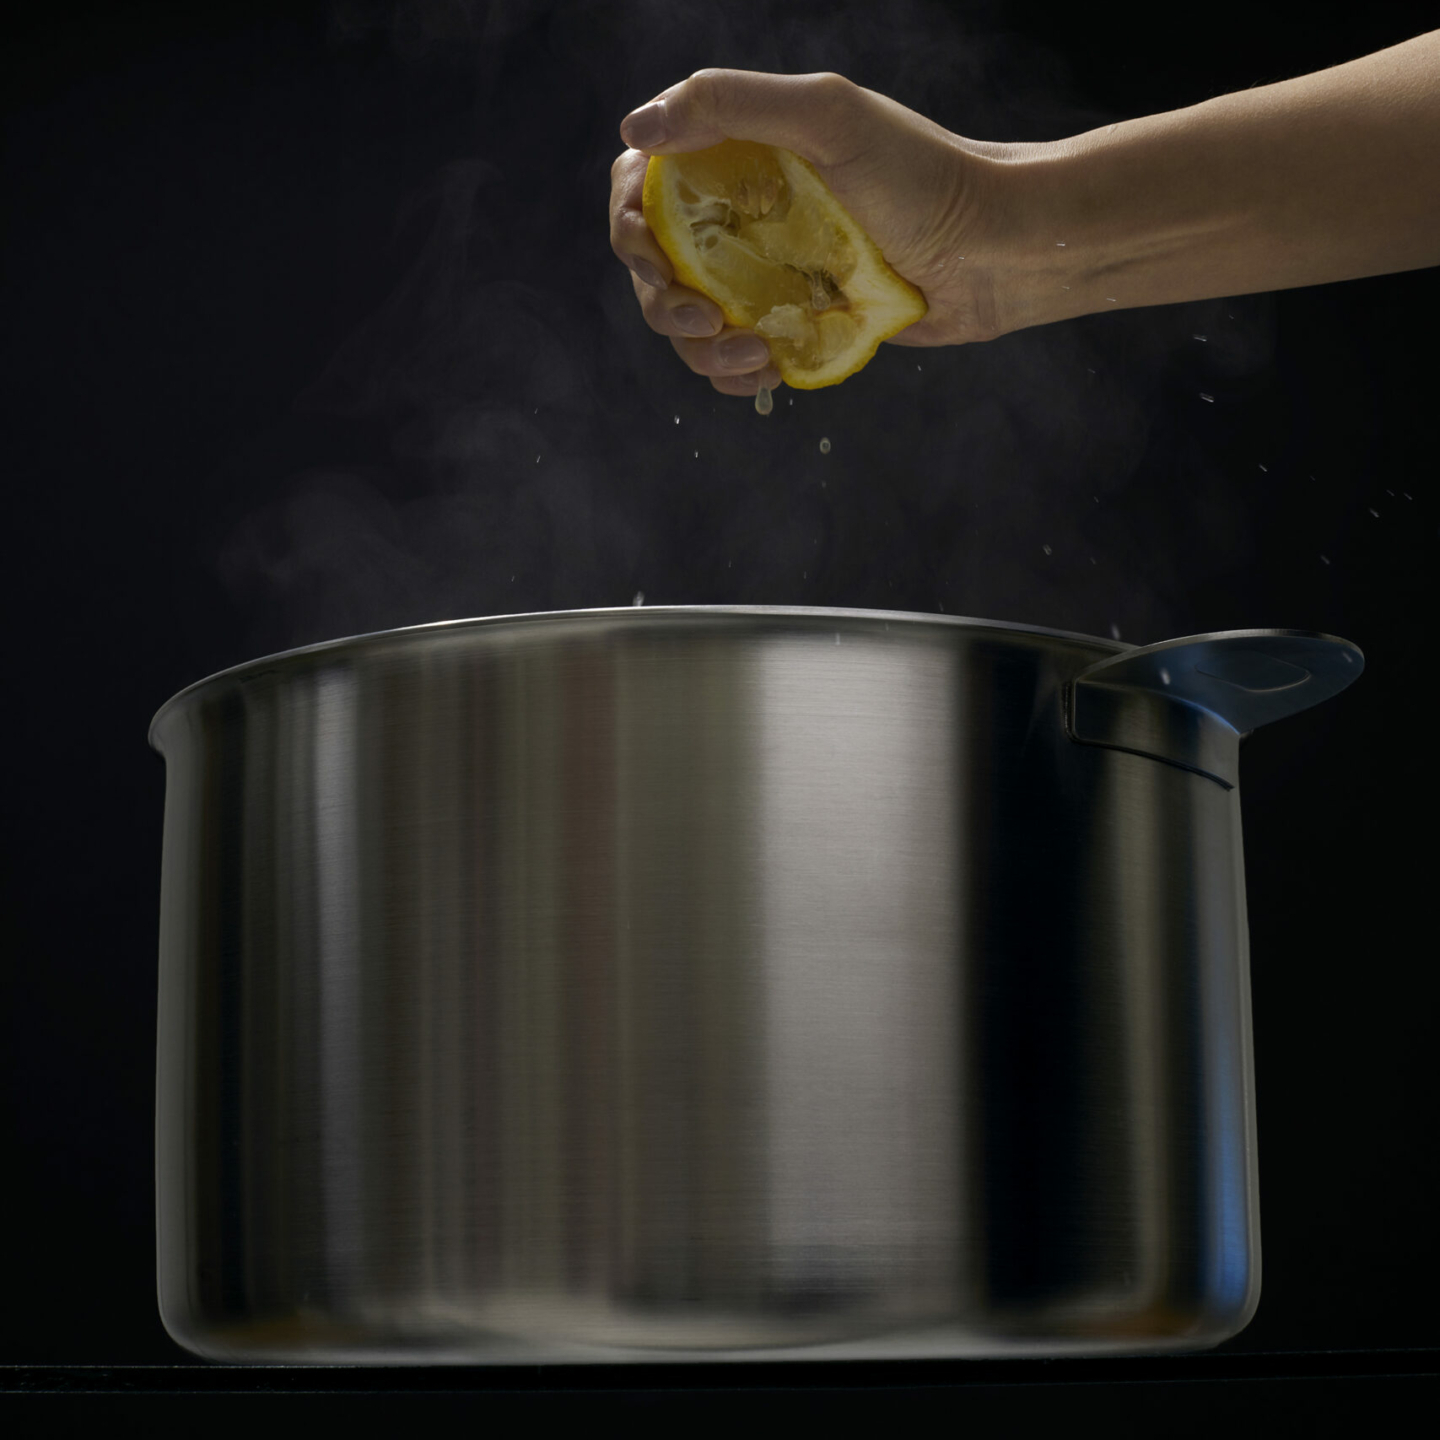 Hand squeezing lemon over stackware stockpot